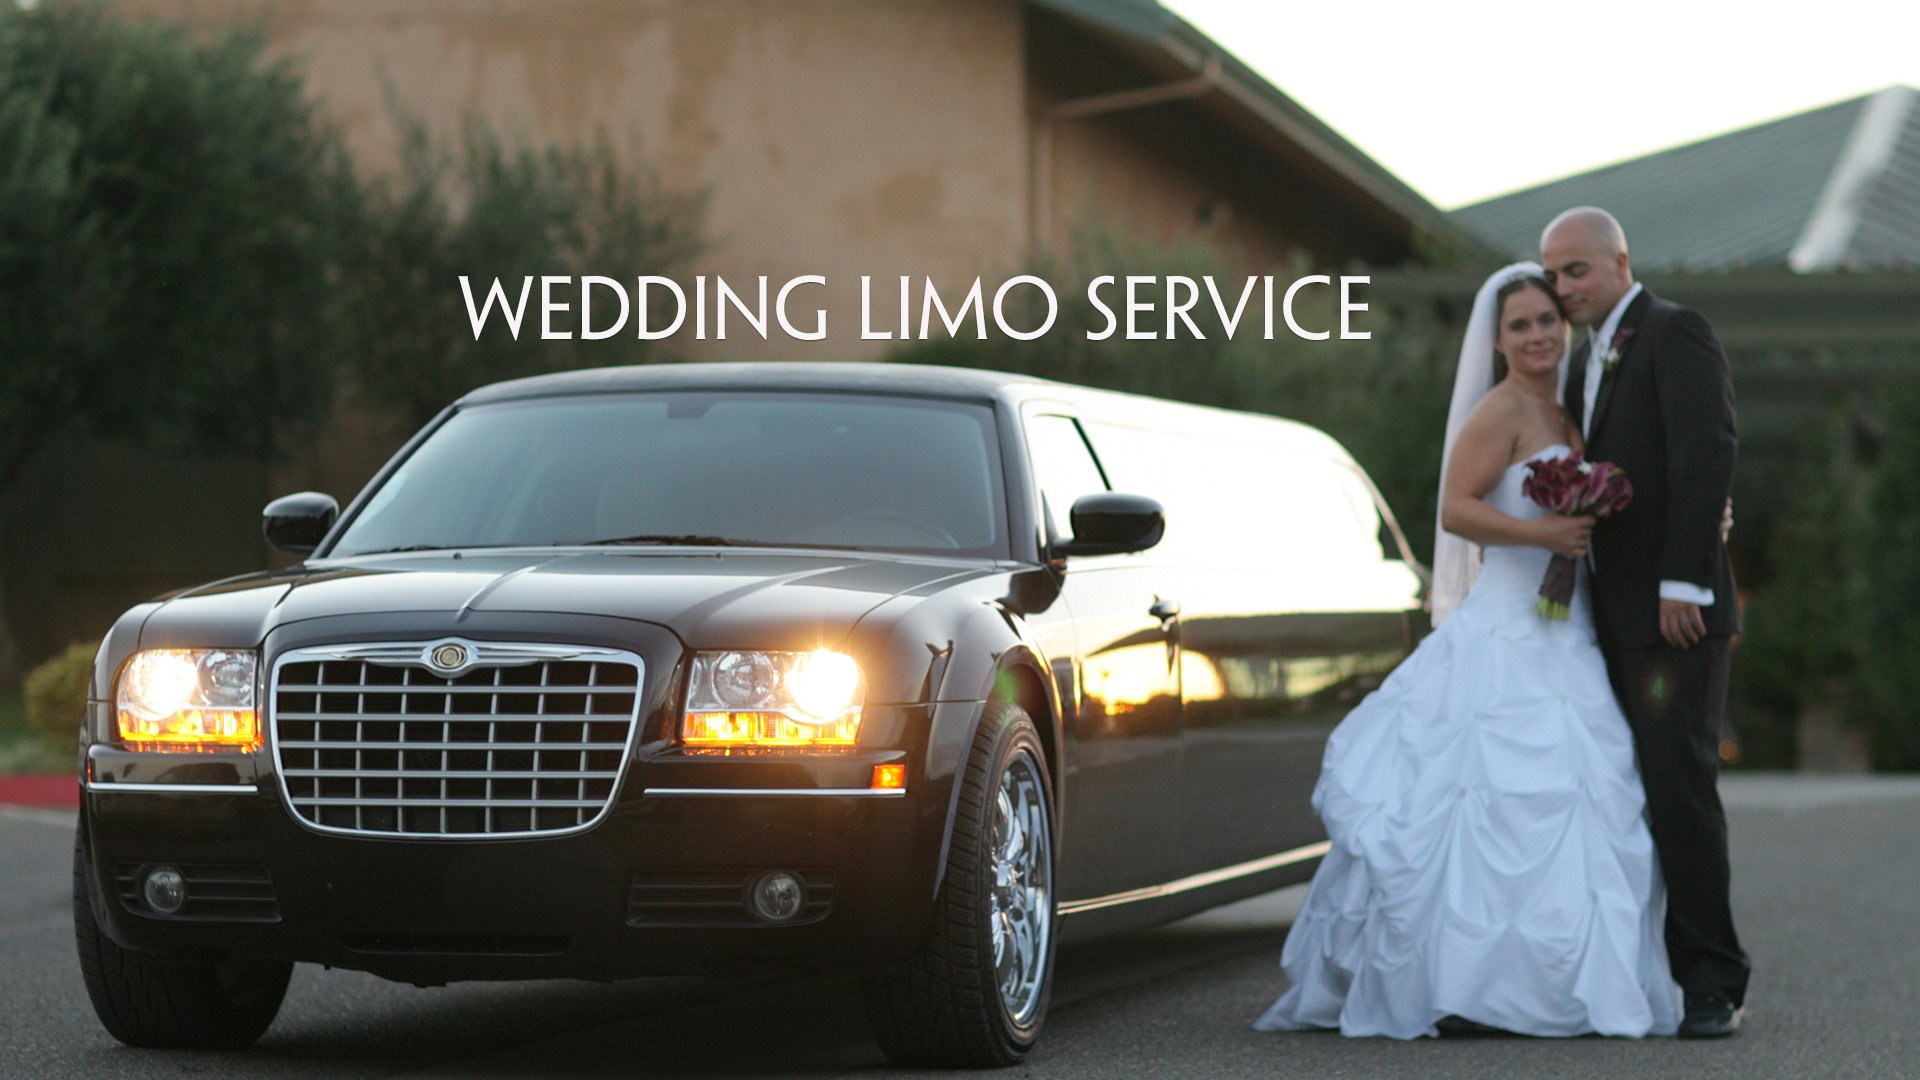 Seattle Limo Service  Best Transportation Service In. Piers Steel Procrastination Rich Media Ads. California Teacher Requirements. Carpet Cleaning The Woodlands Tx. Environmental Planning Masters Programs. Chase Student Loans Number Us Senate Arizona. What Is Industrial Psychology. Landscape Scheduling Software. American Viatical Services Hot Tub Movers Nj